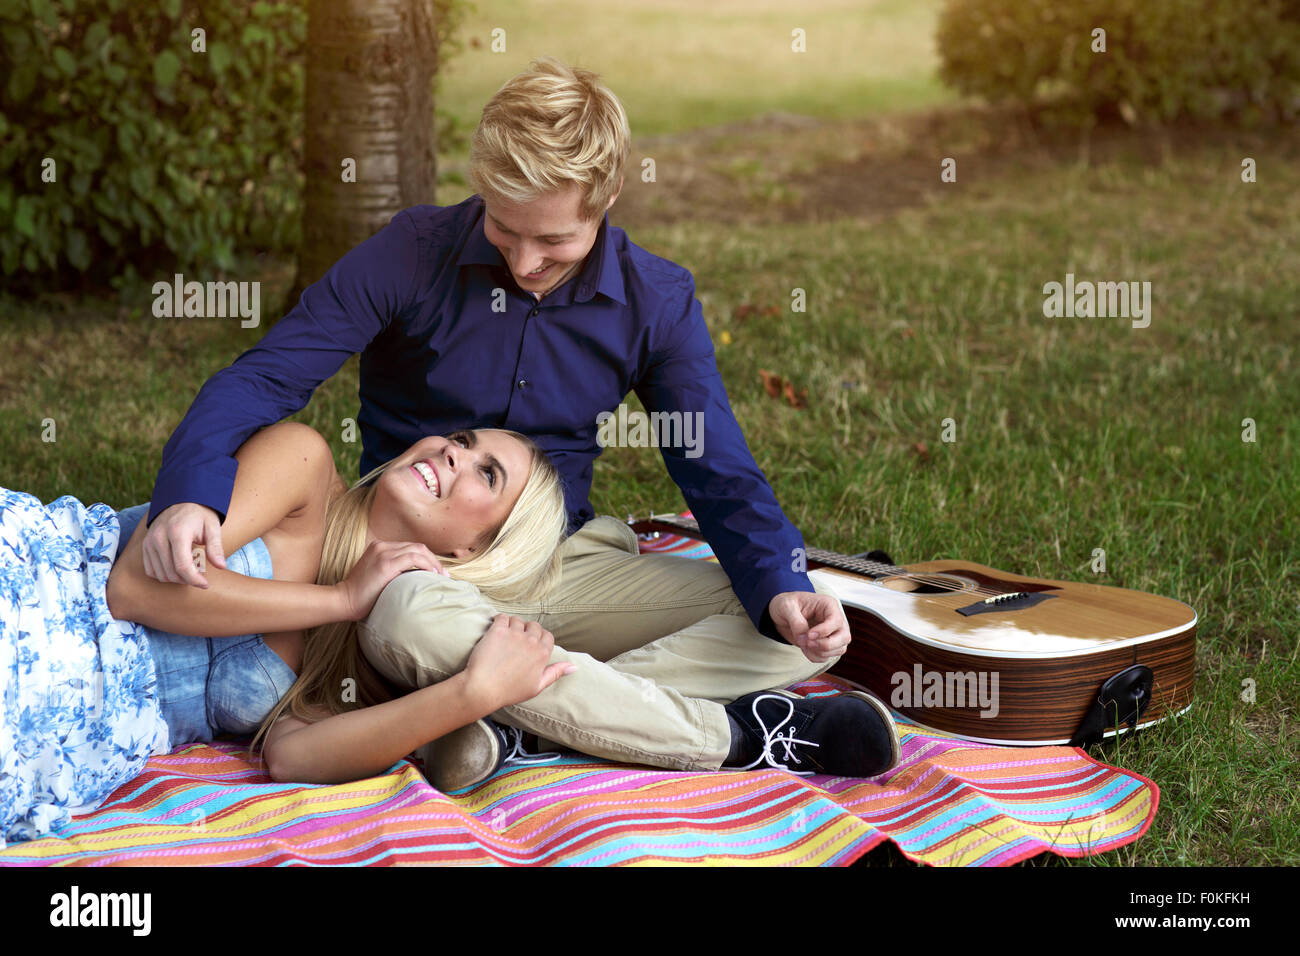 Happy young couple with guitar on blanket in park - Stock Image